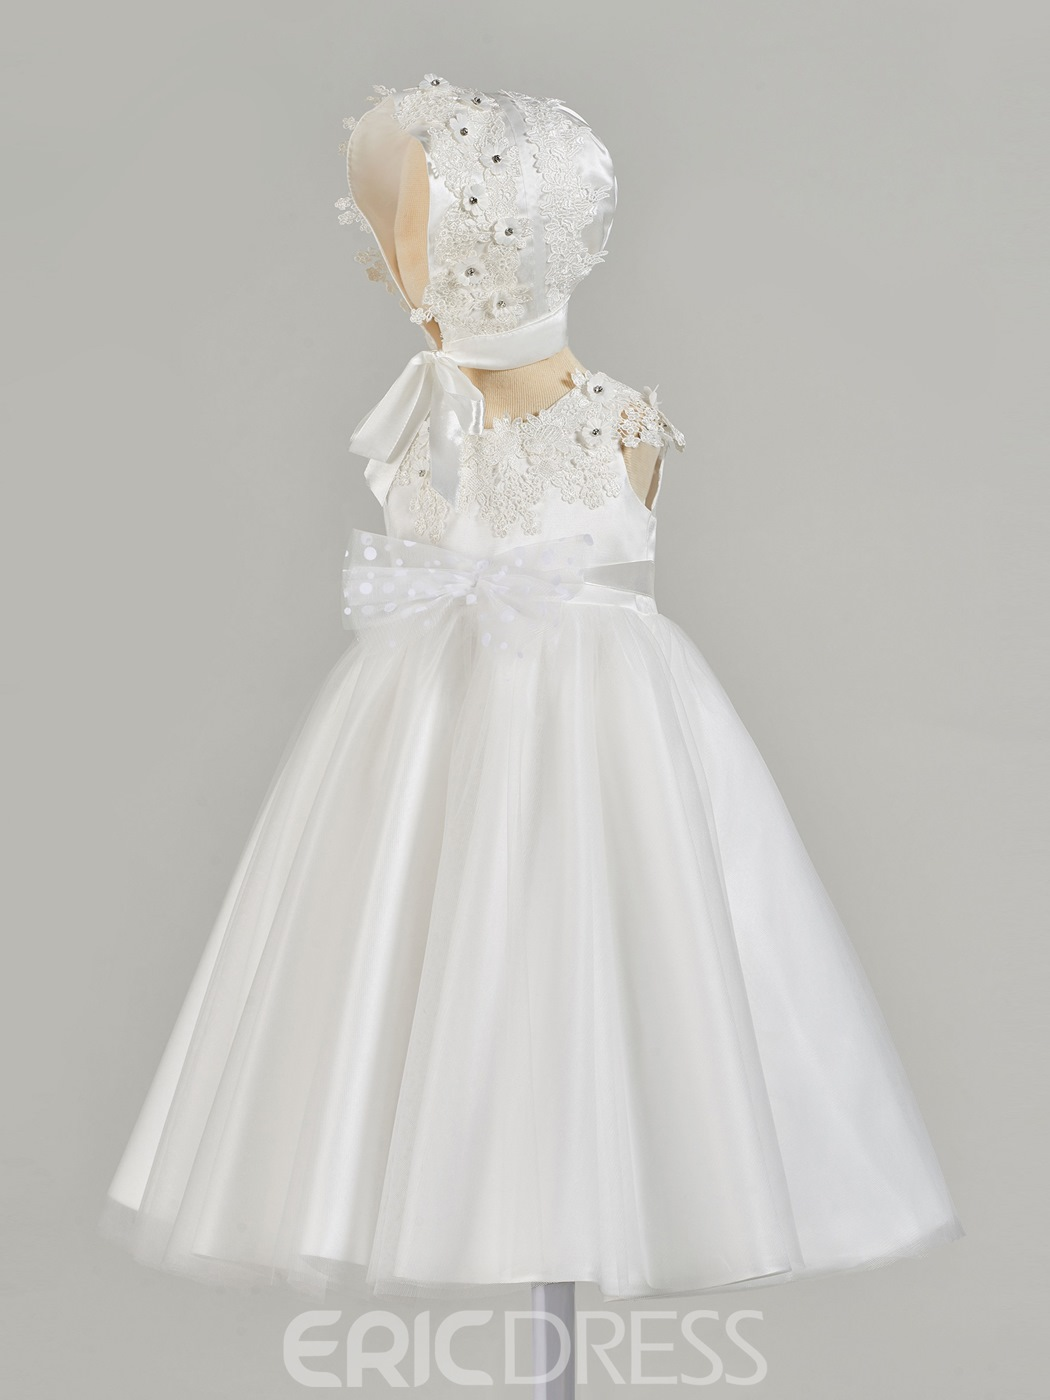 Ericdress A Line Applique Baby Girl's Christening Gown